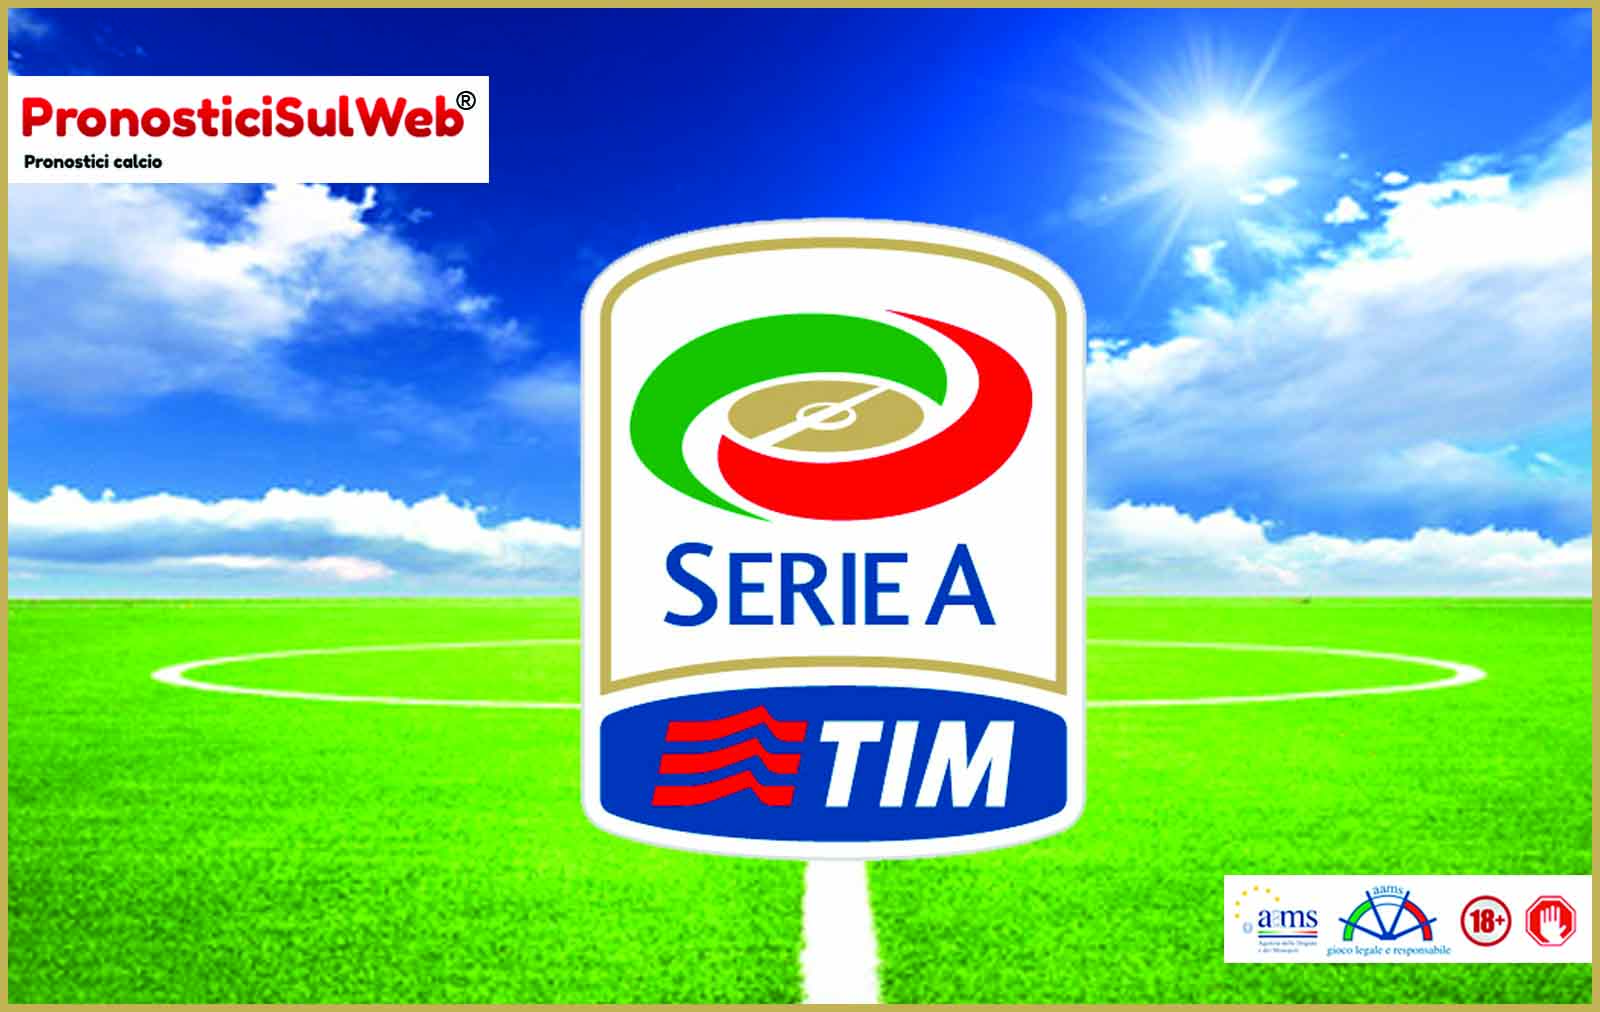 Pronostici e quote vincente scudetto 2020